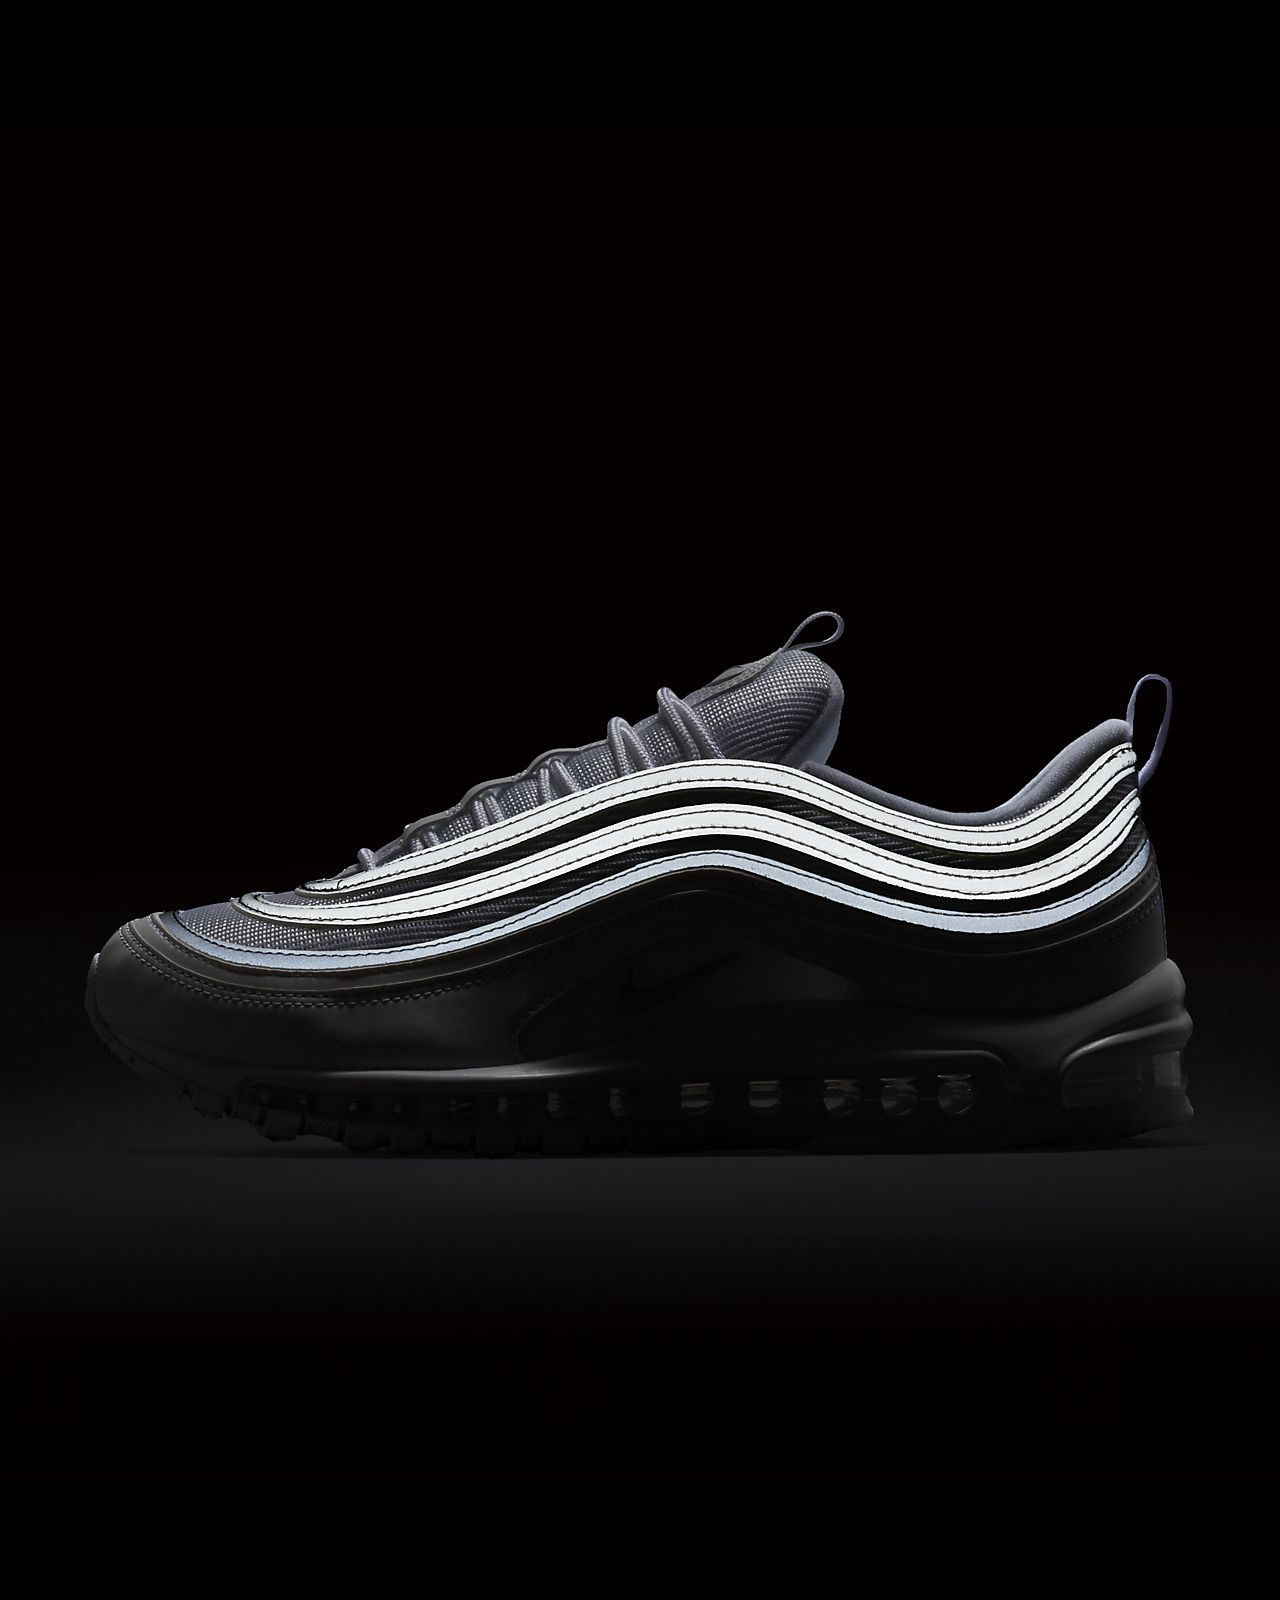 hot sales 1ed29 51346 Nike Air Max 97 Men's Shoe